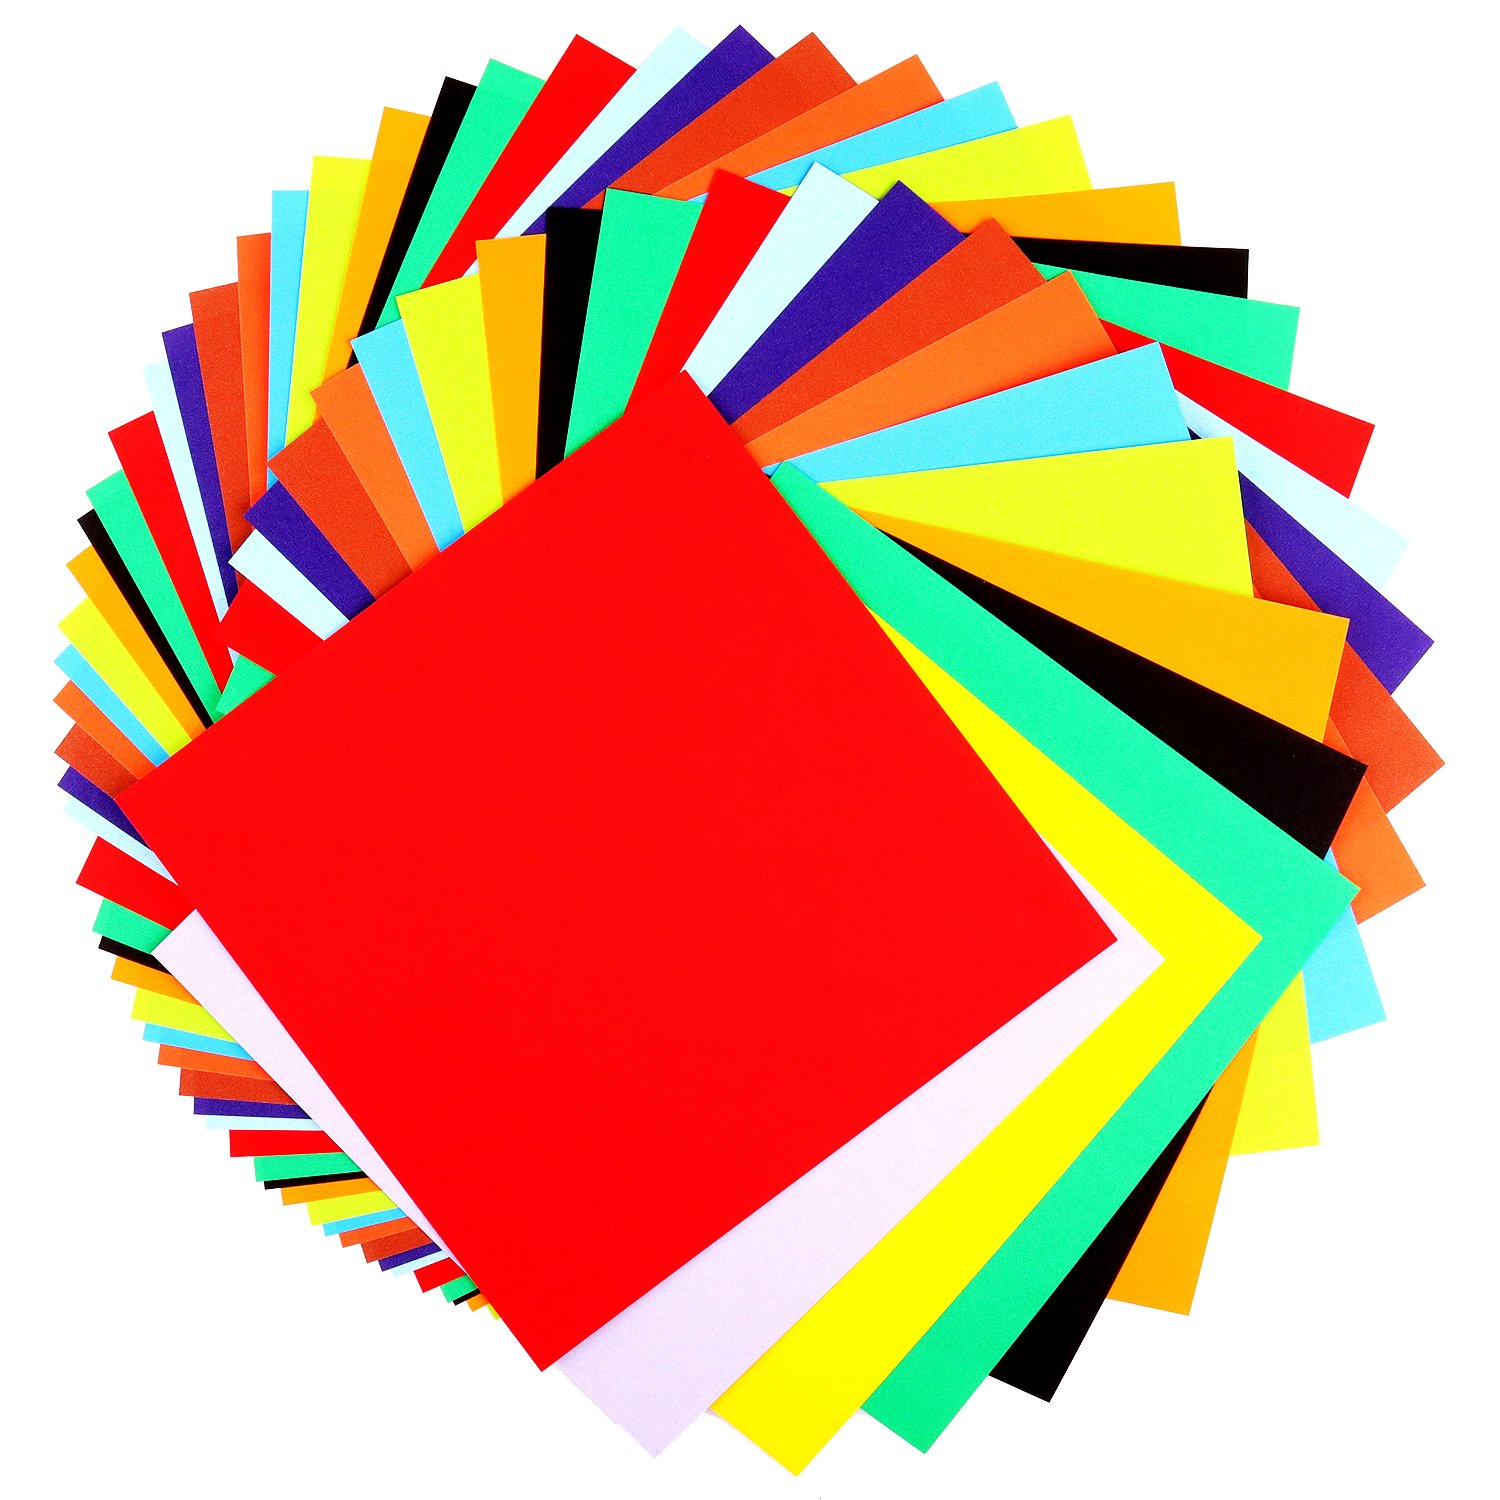 Huntz 200 Count Origami Paper, Double Sided Colors, 6-Inch For Arts and Crafts Projects Color Fancy 4336880675